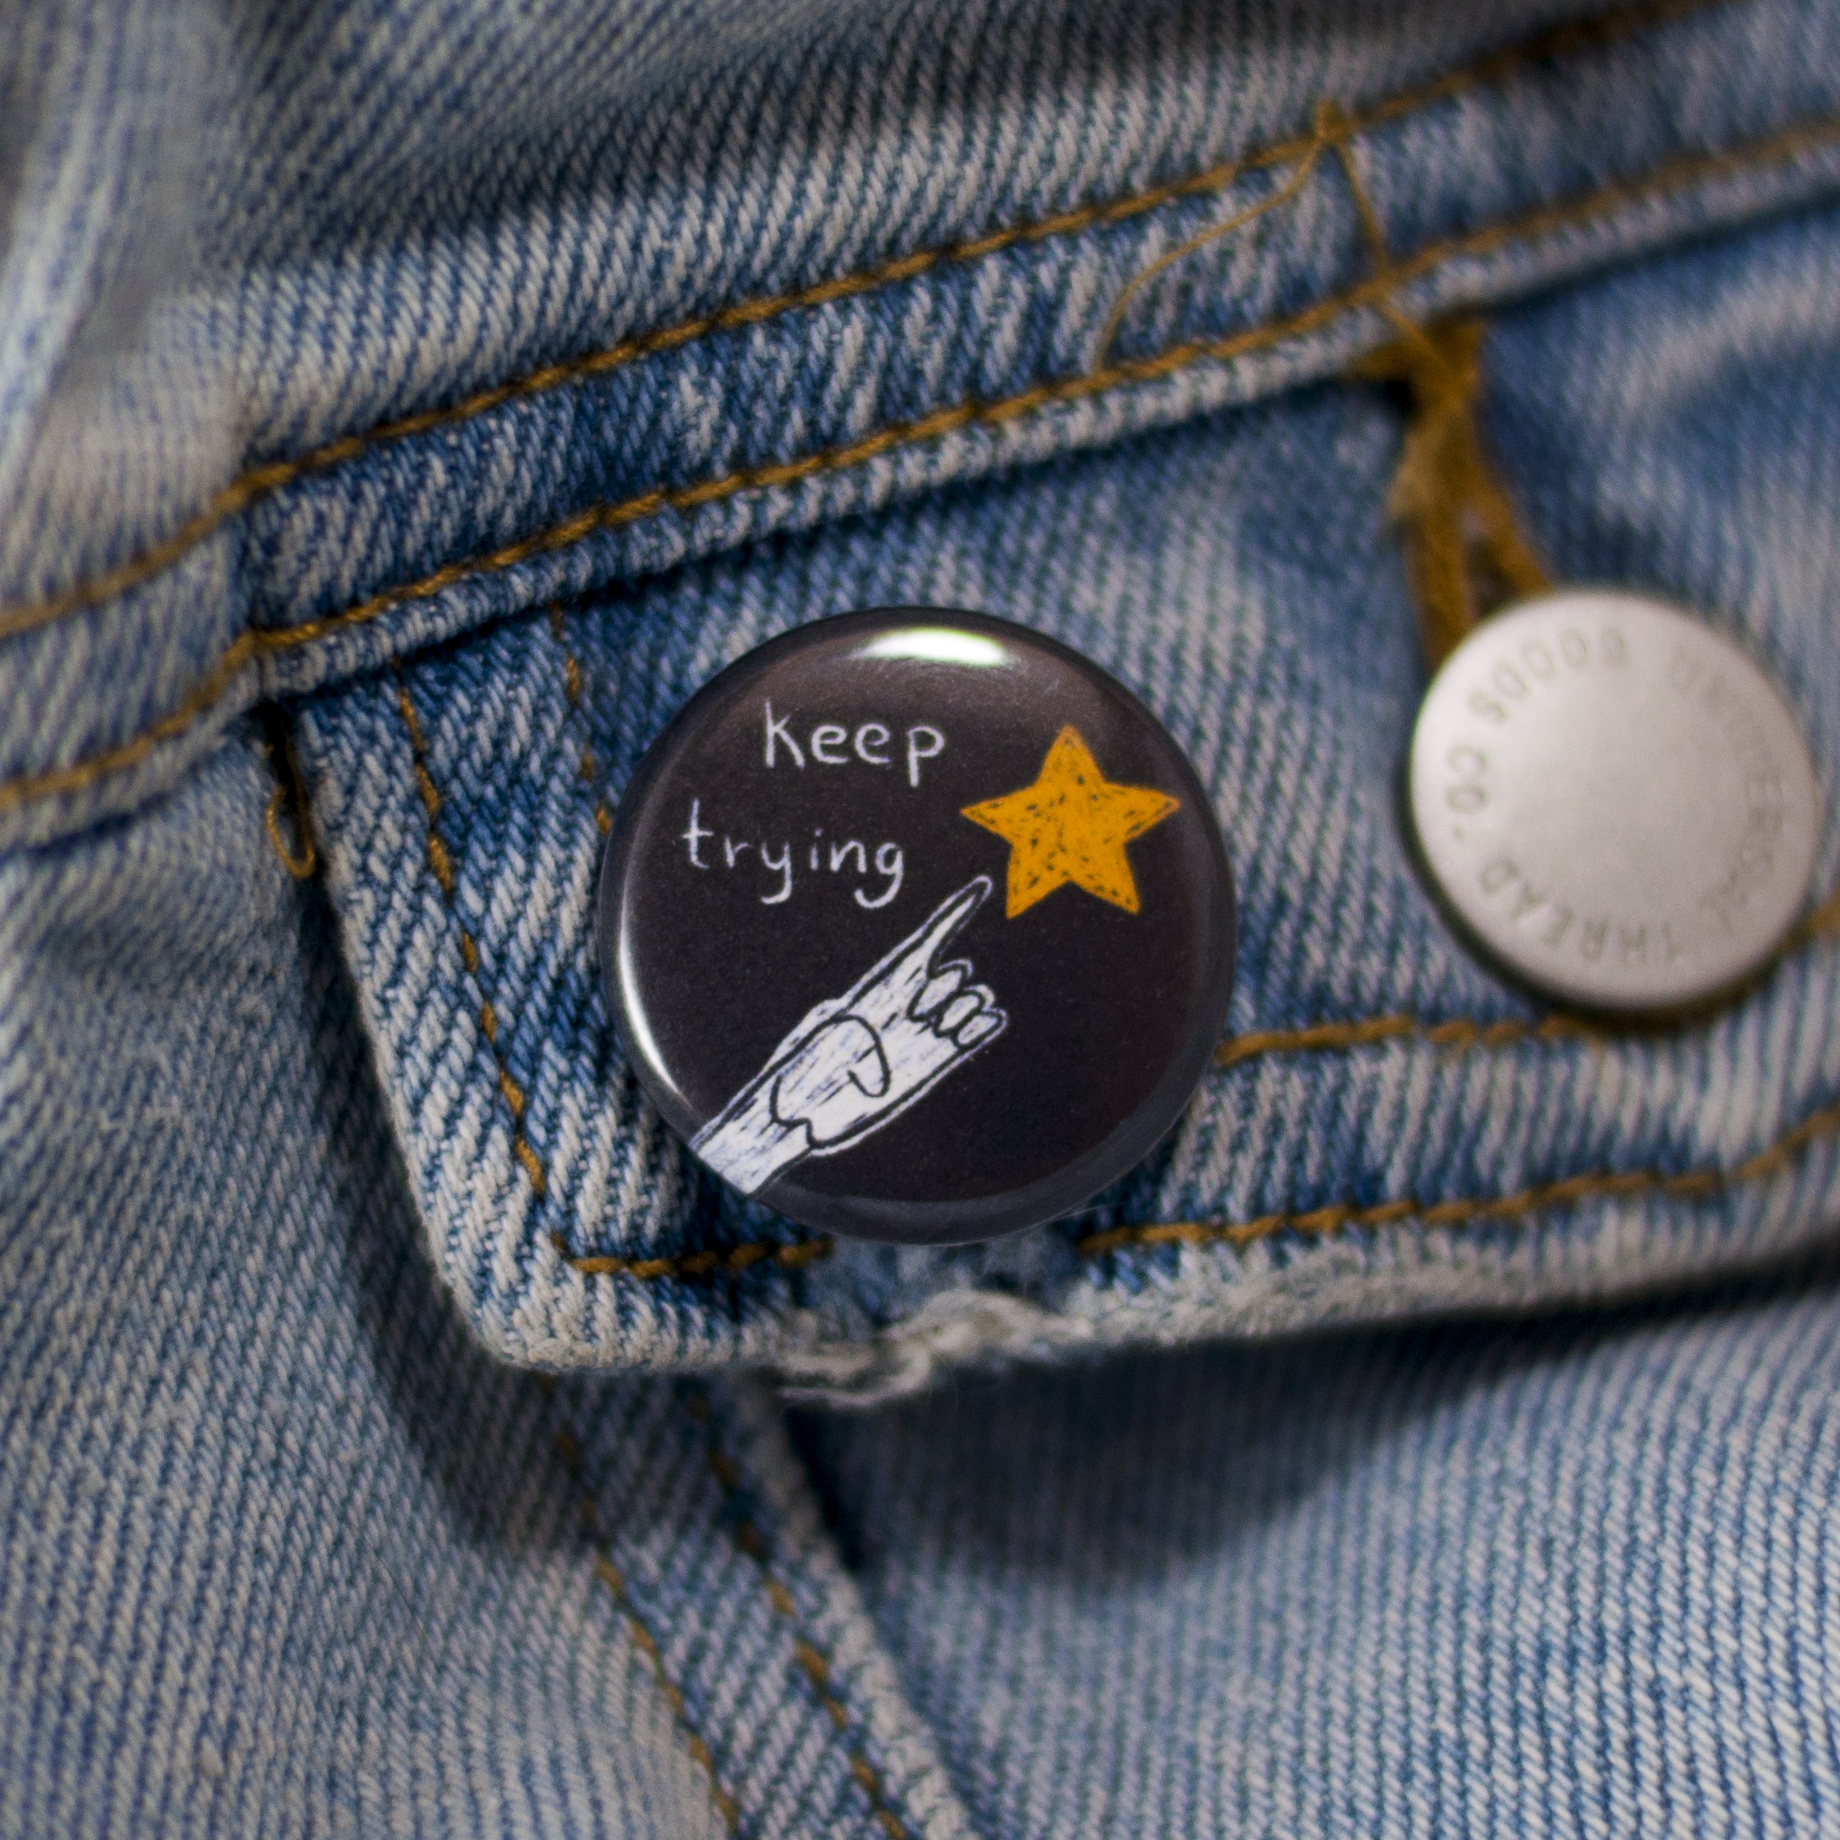 try button worn on jean jacket